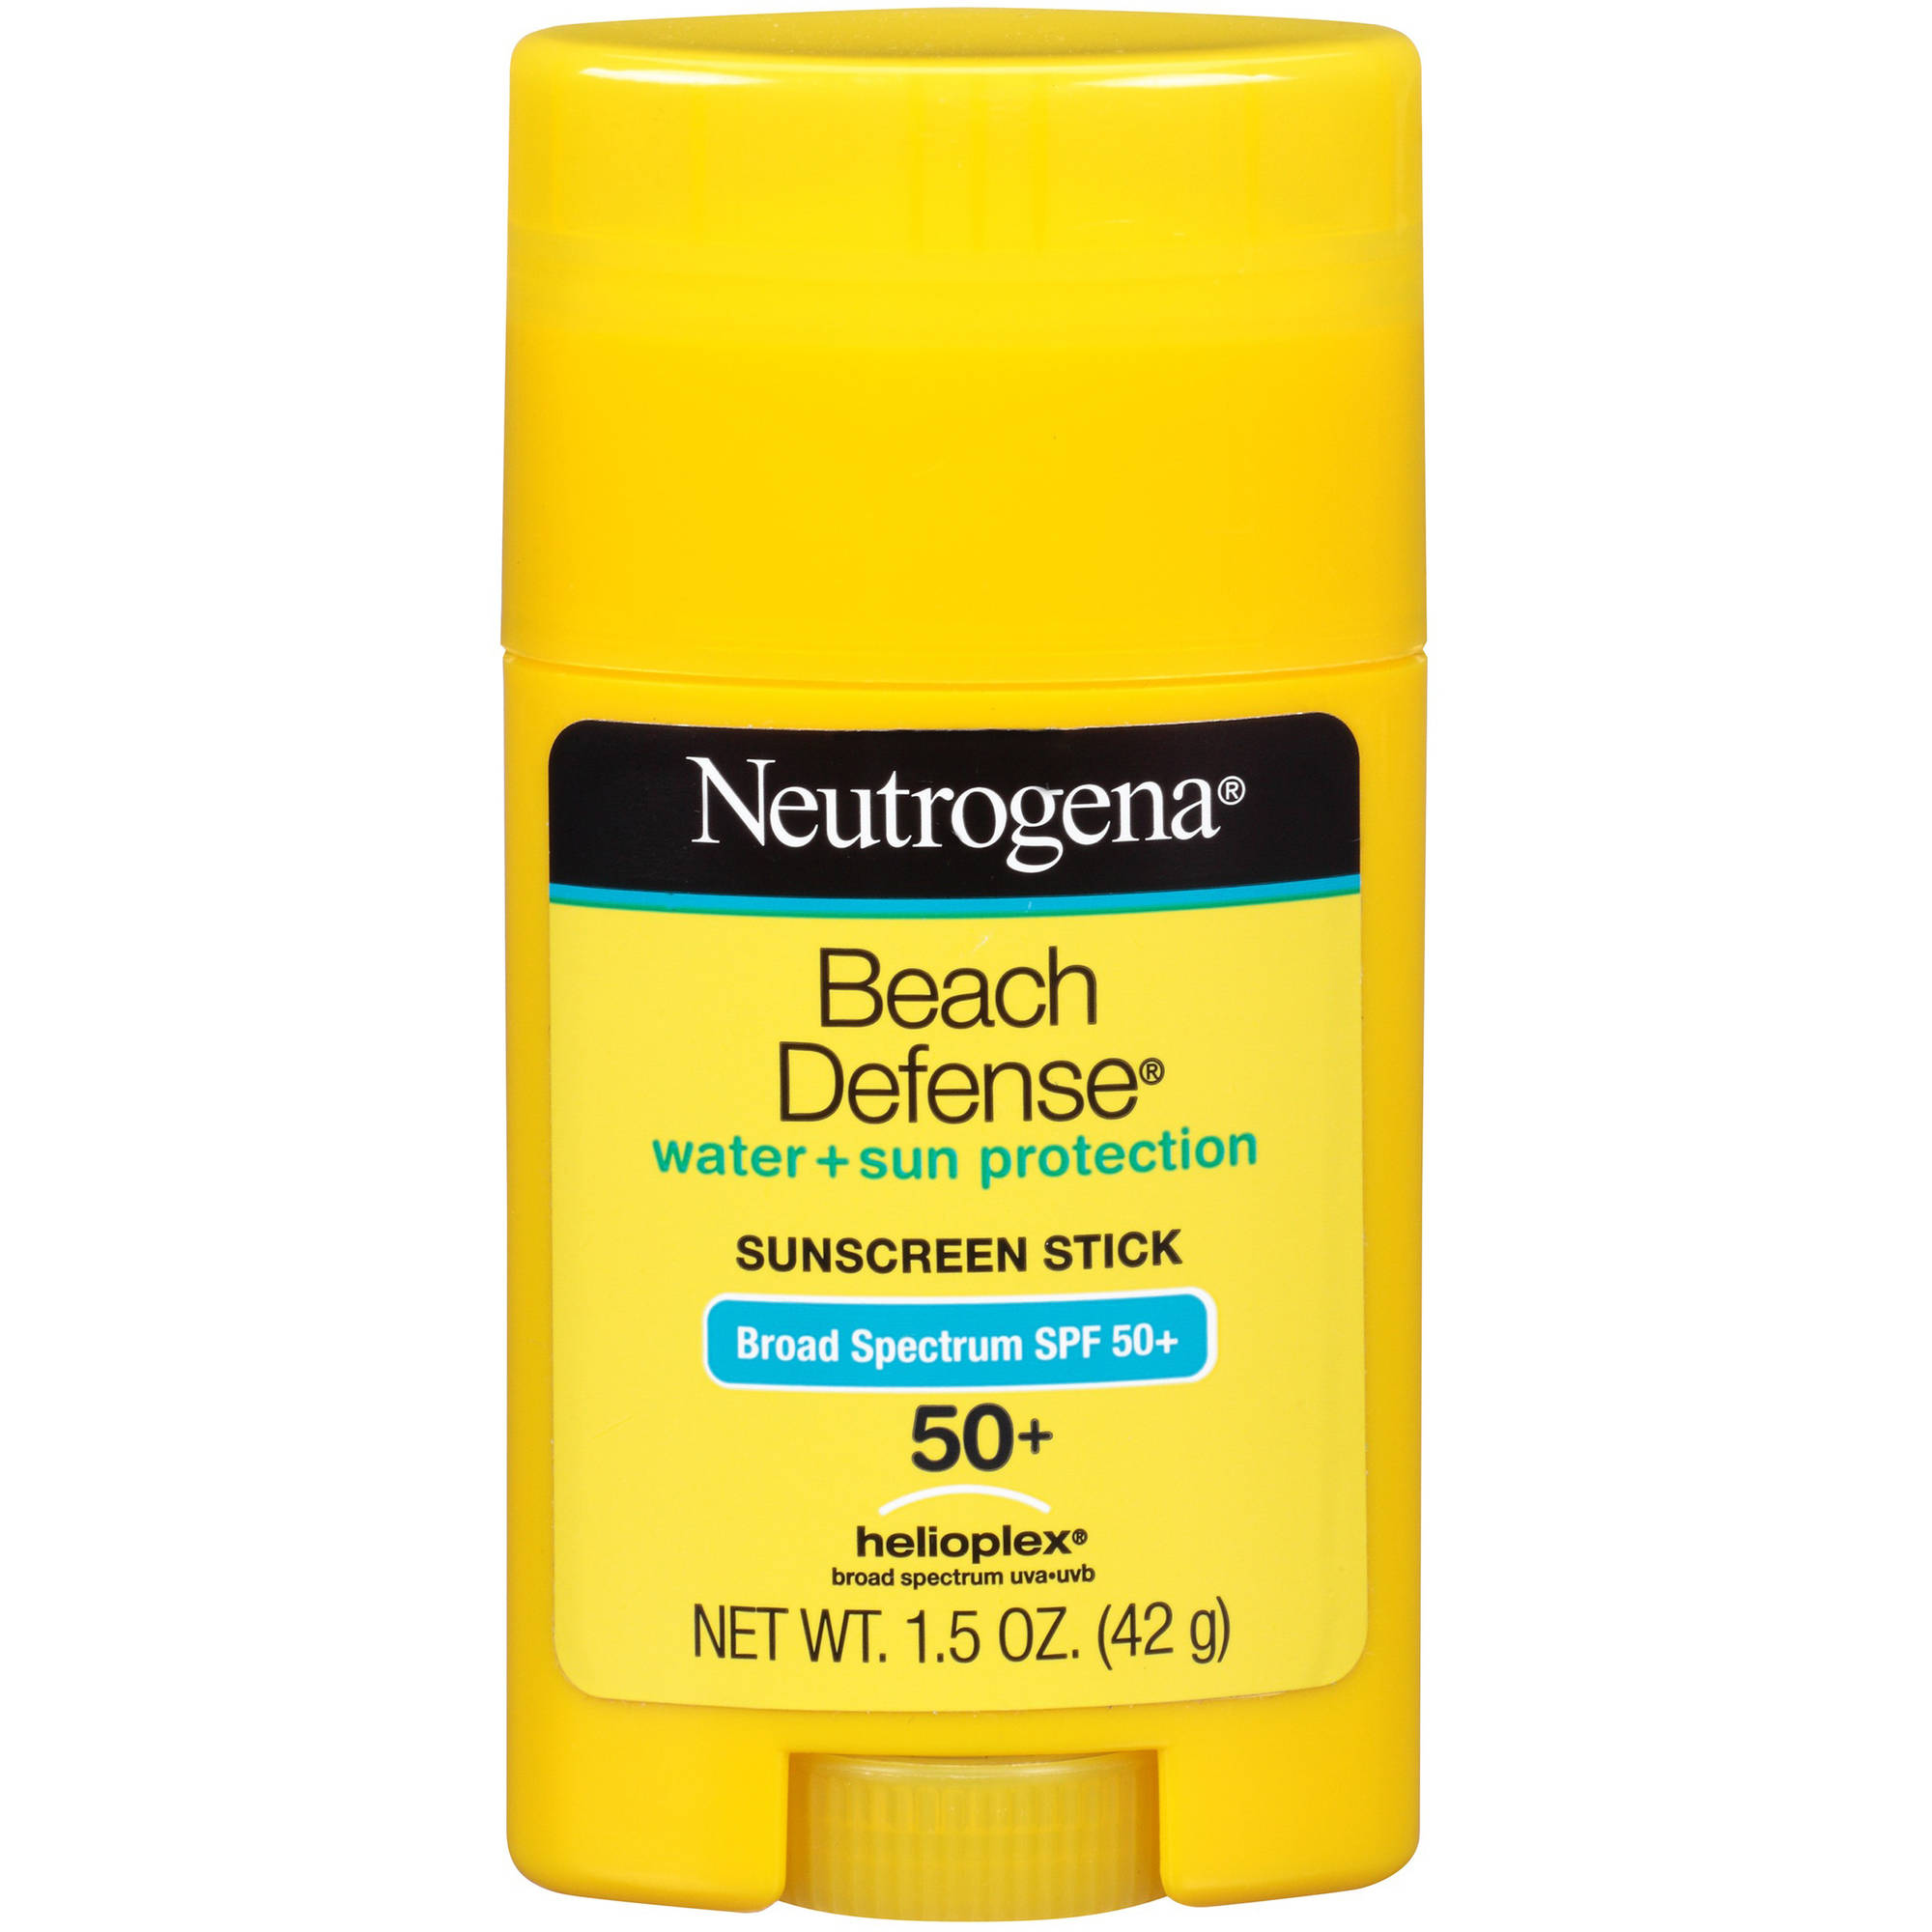 Neutrogena Beach Defense Water + Sun Barrier Sunscreen, SPF 50+, 1.5 oz